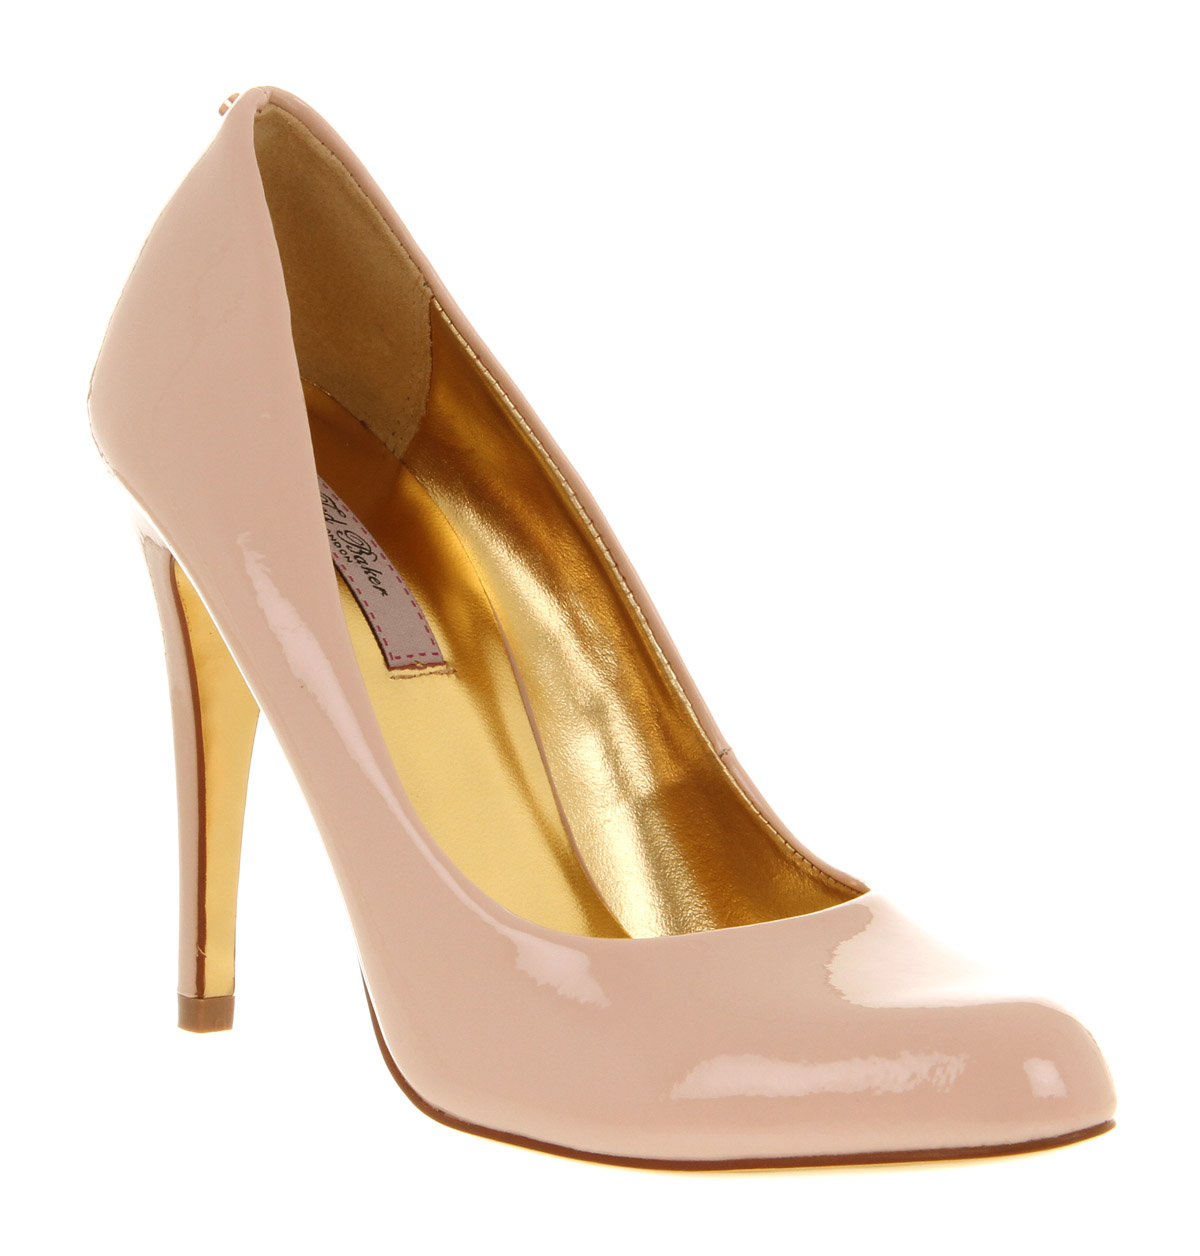 dbd9fe2a5 Ted Baker Jaxine 2 Court Shoe Nude Patent Leather in Natural - Lyst